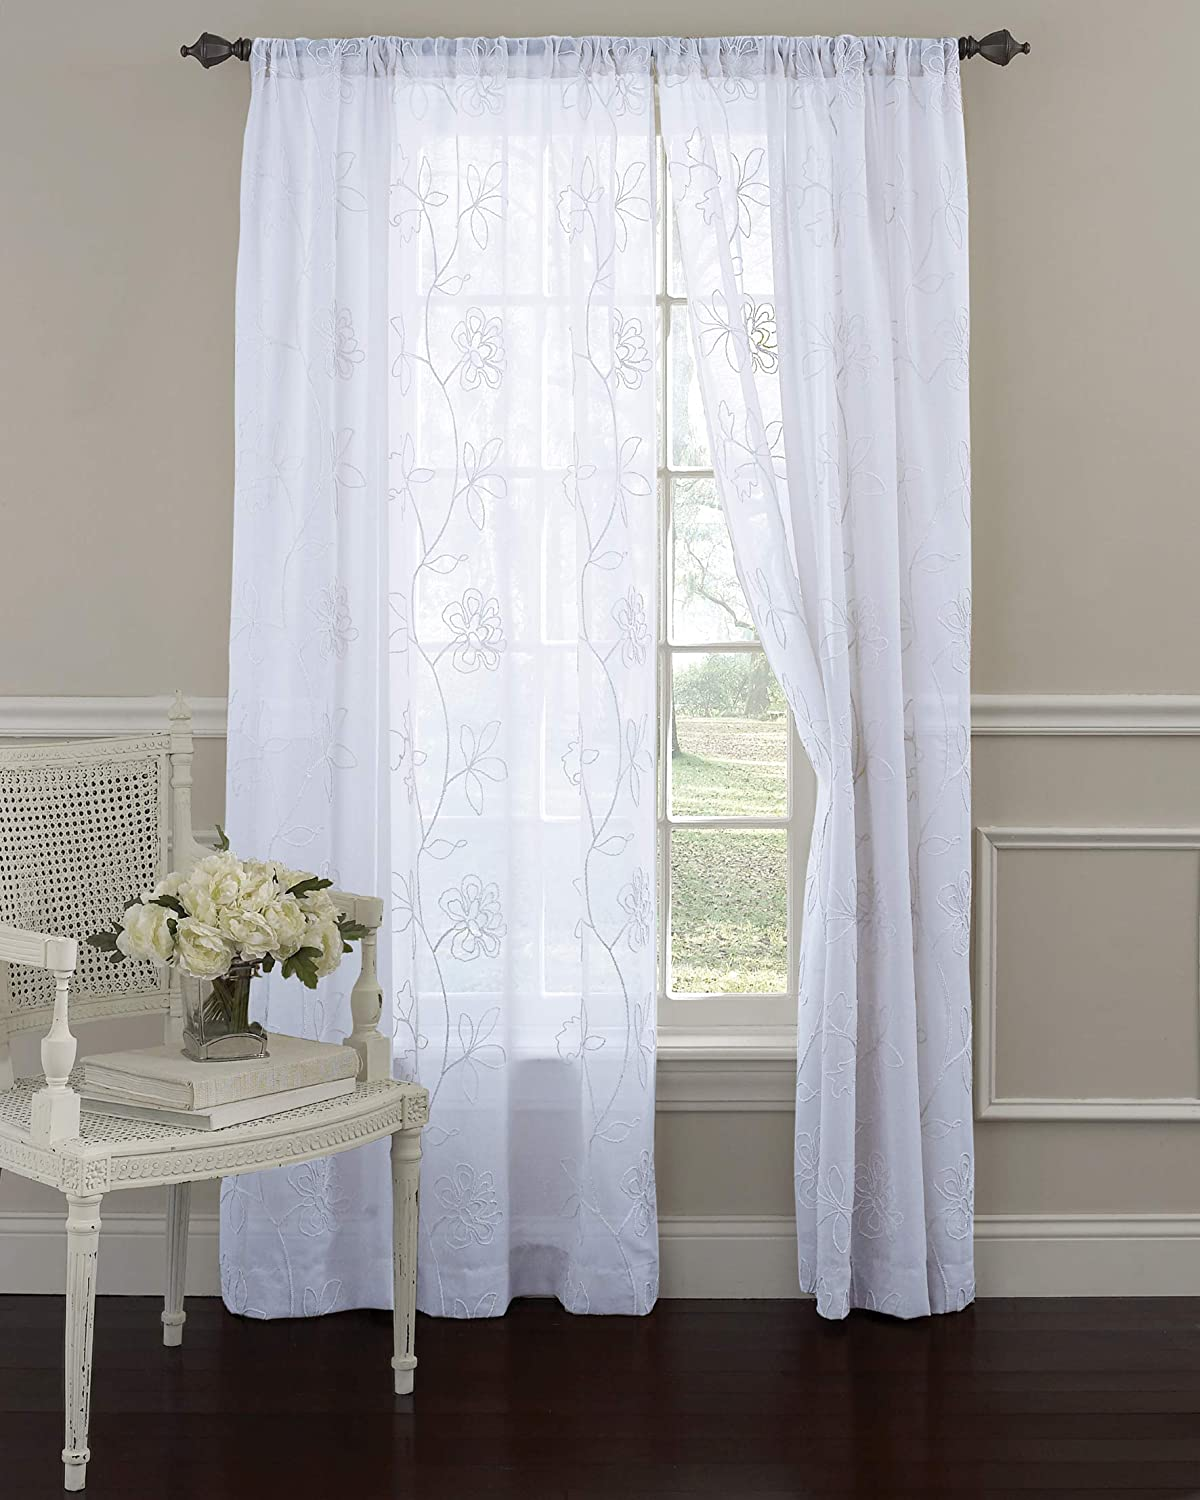 Laura Ashley Frosting Sheer Window Curtains 84 Inch Length, 52